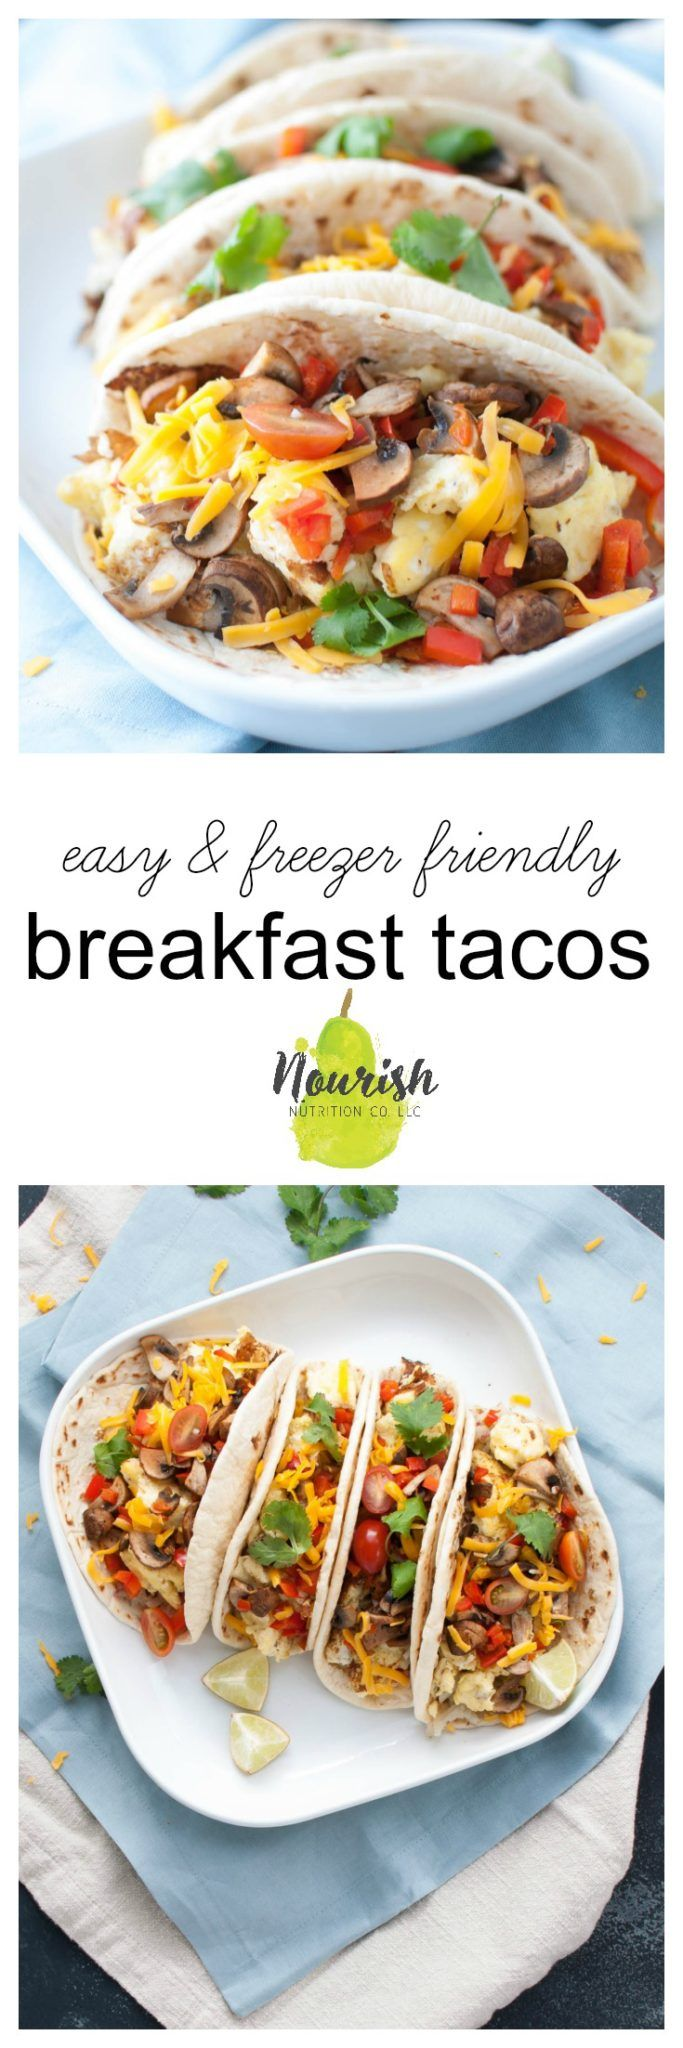 The Easiest Breakfast Tacos Recipe   eggs, vegetables, and potatoes rolled up to be frozen for easy weekday breakfasts or enjoyed on a relaxing morning, pop them into the freezer for your go-to breakfast burrito   www.nourishnutritionblog.com via @nourishnutrico